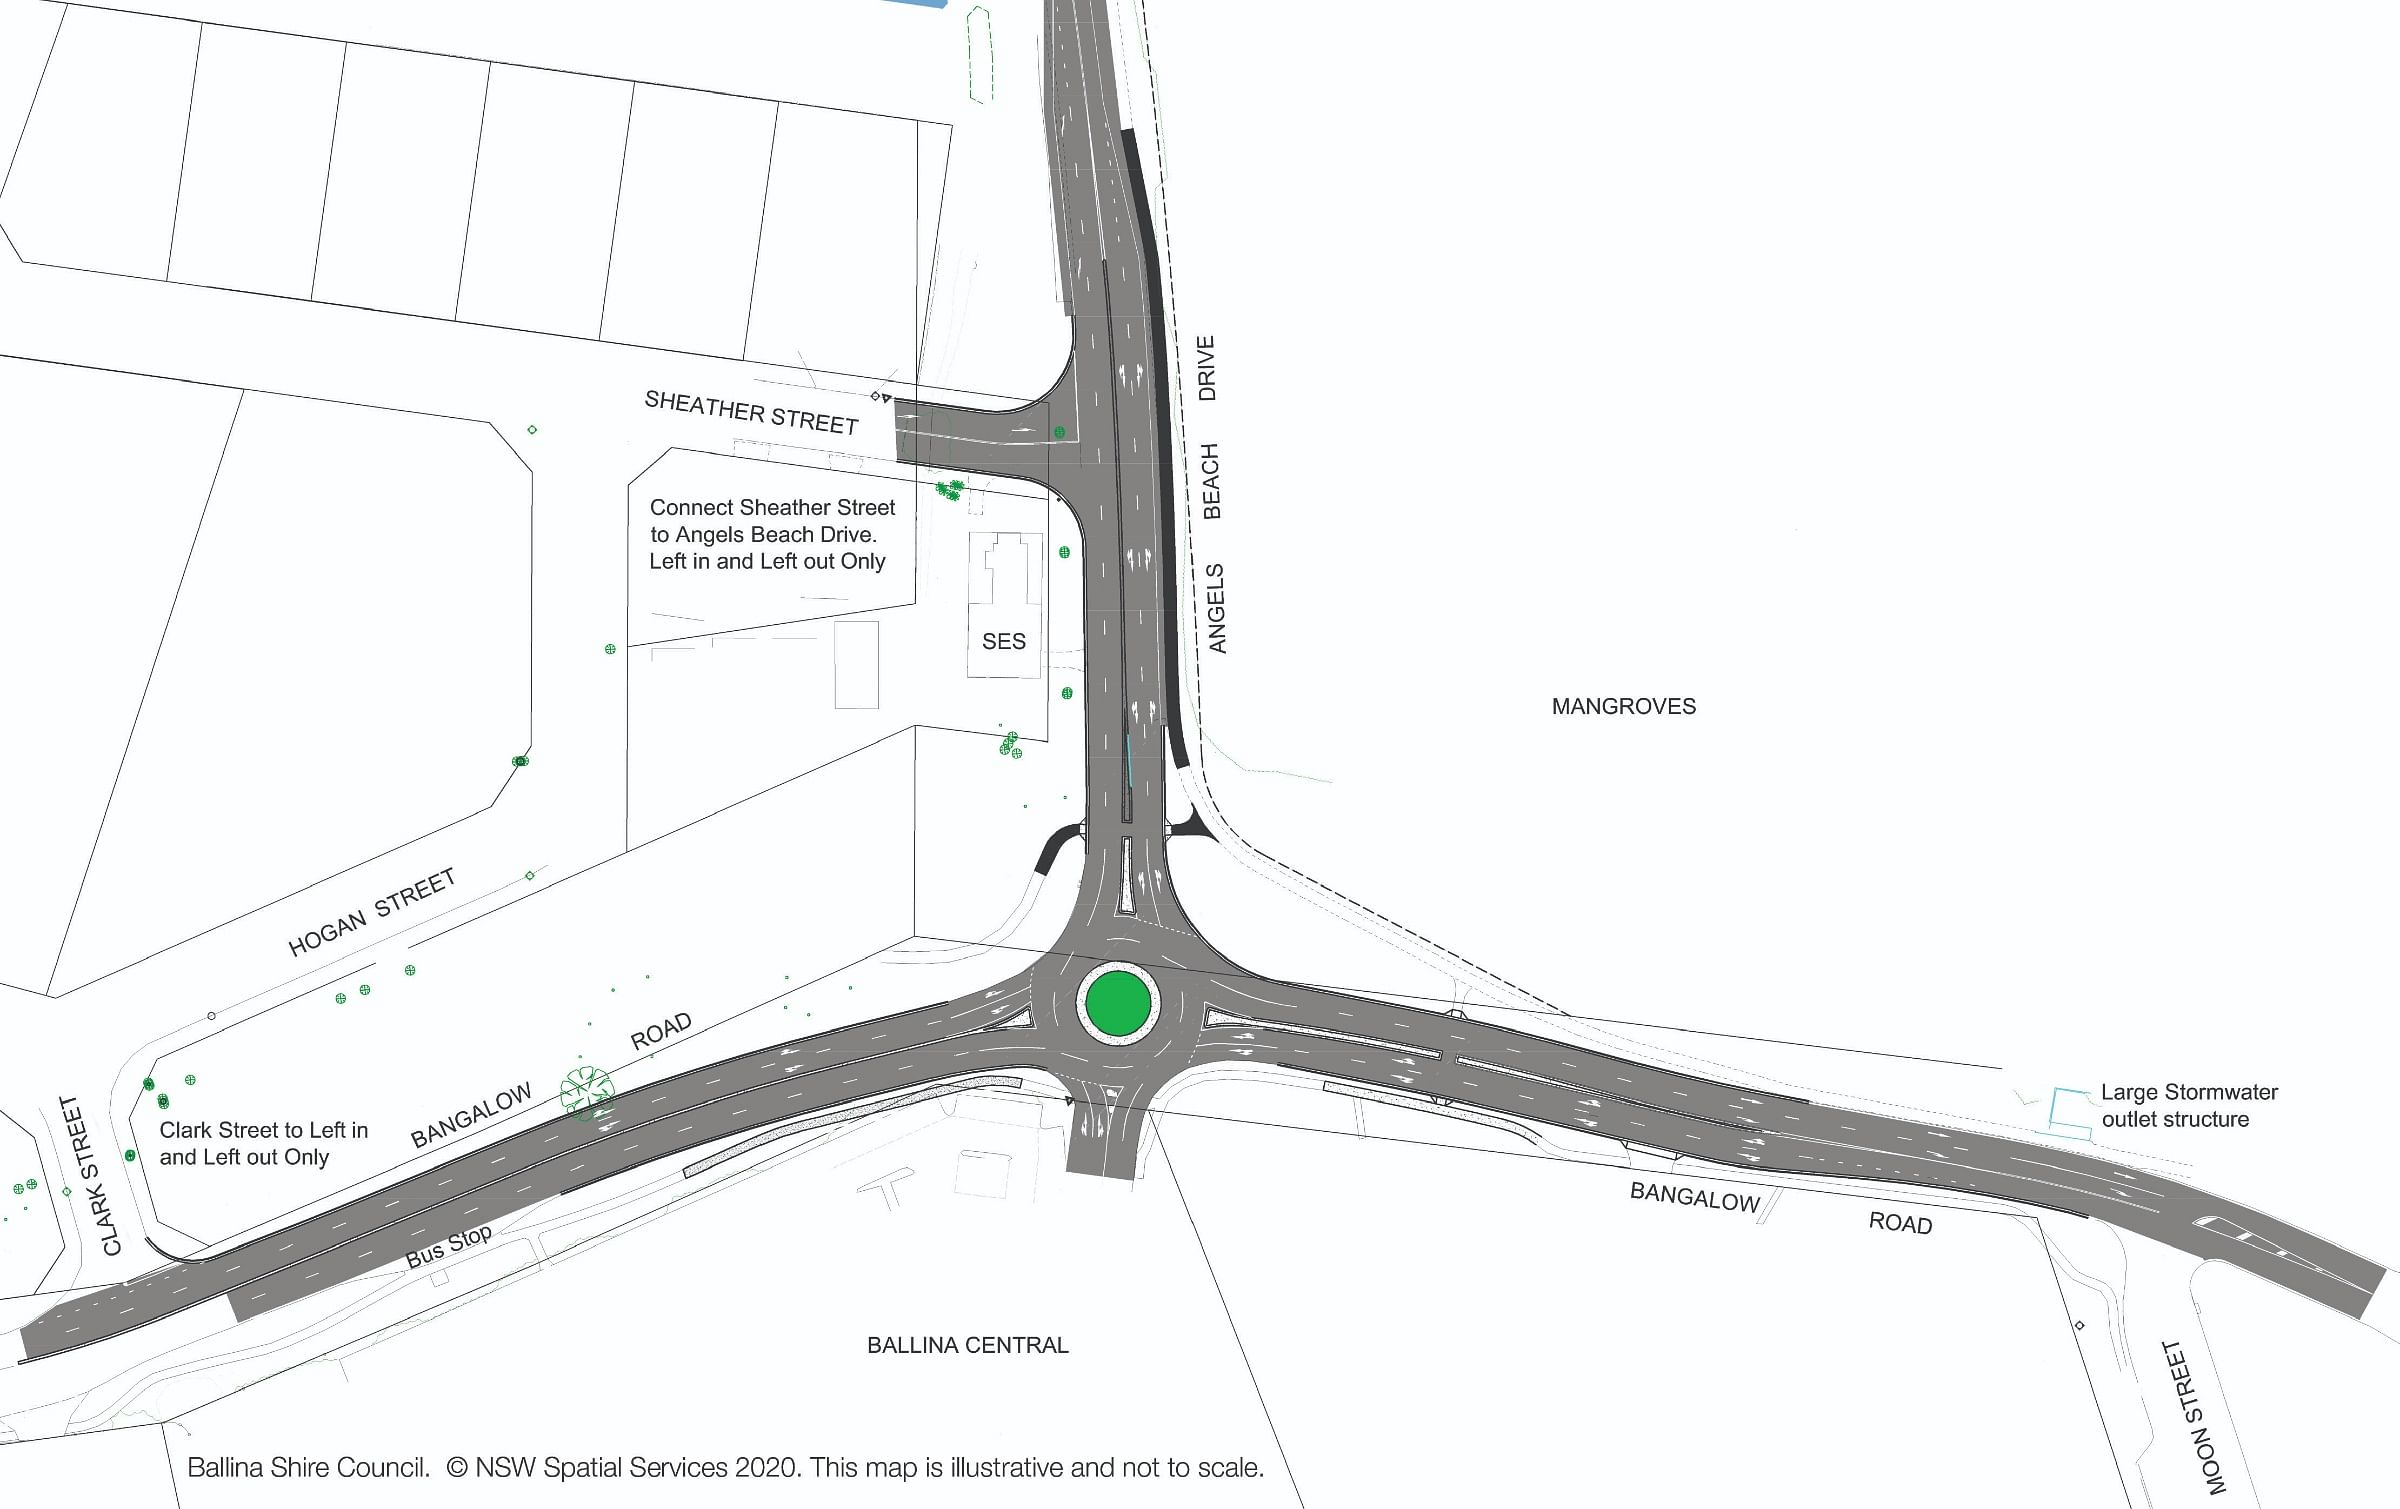 Bangalow road angels beach drive proposed works plan